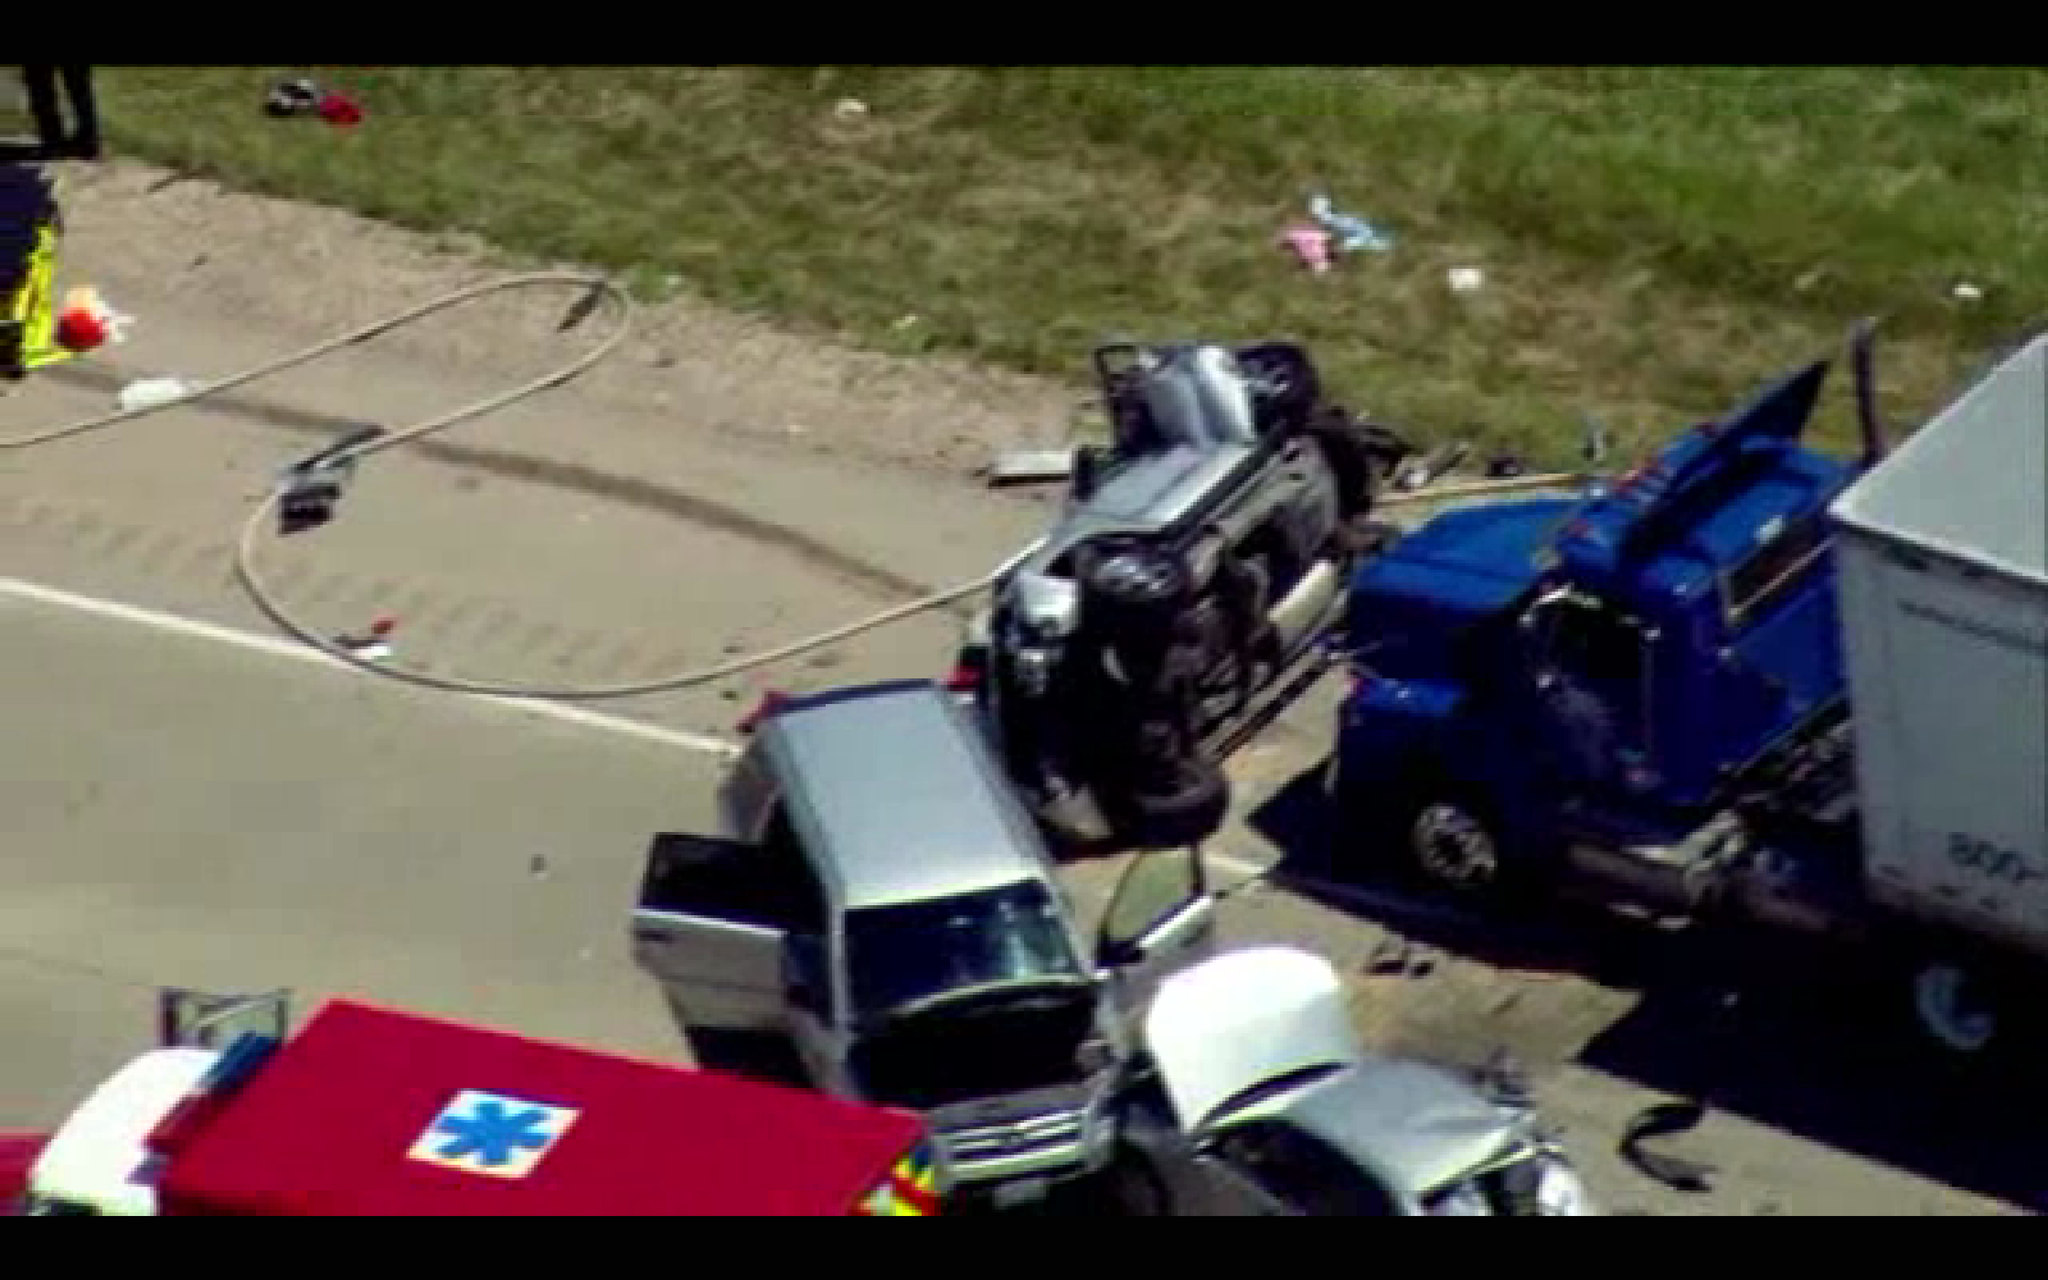 Raw video: Accident on I-94 near Great America - Chicago Tribune